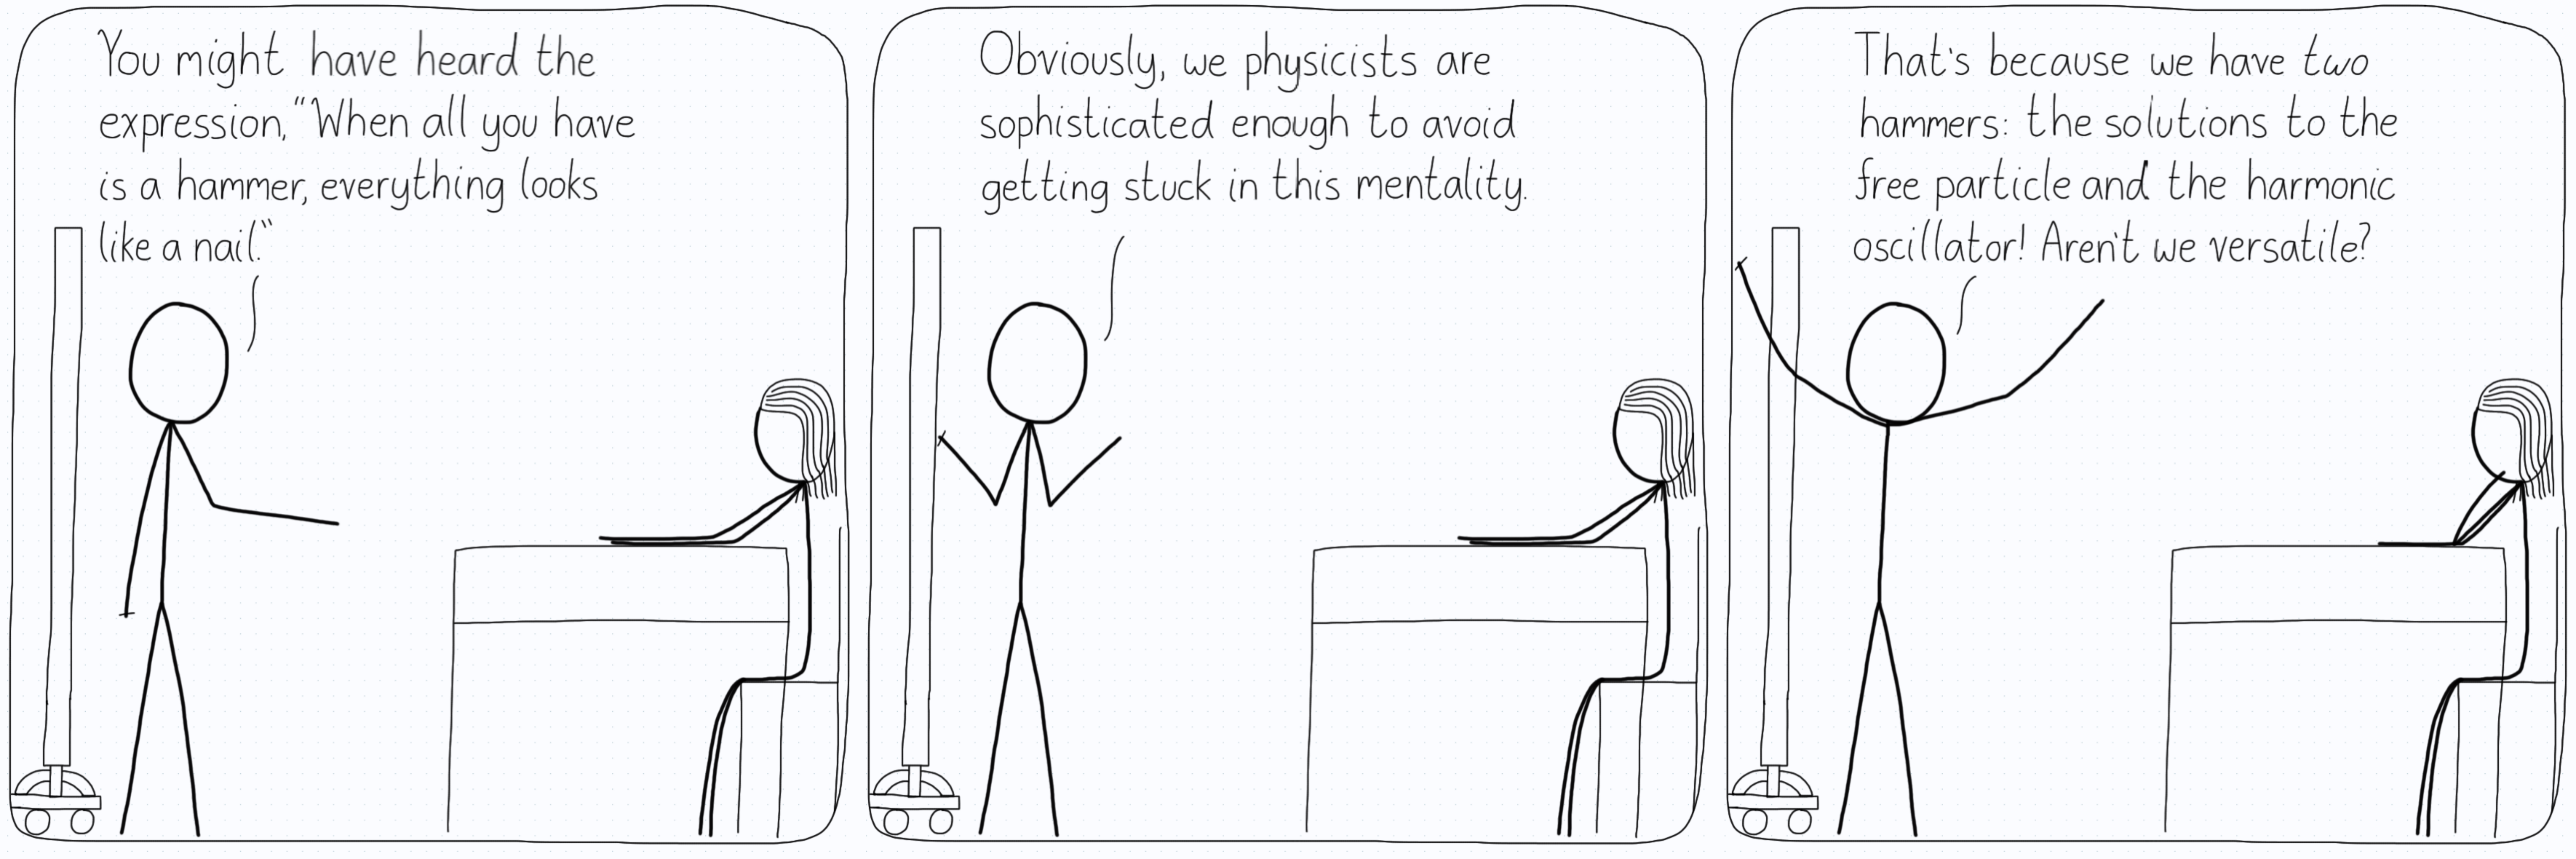 All the things in the world are free particles or harmonic oscillators.